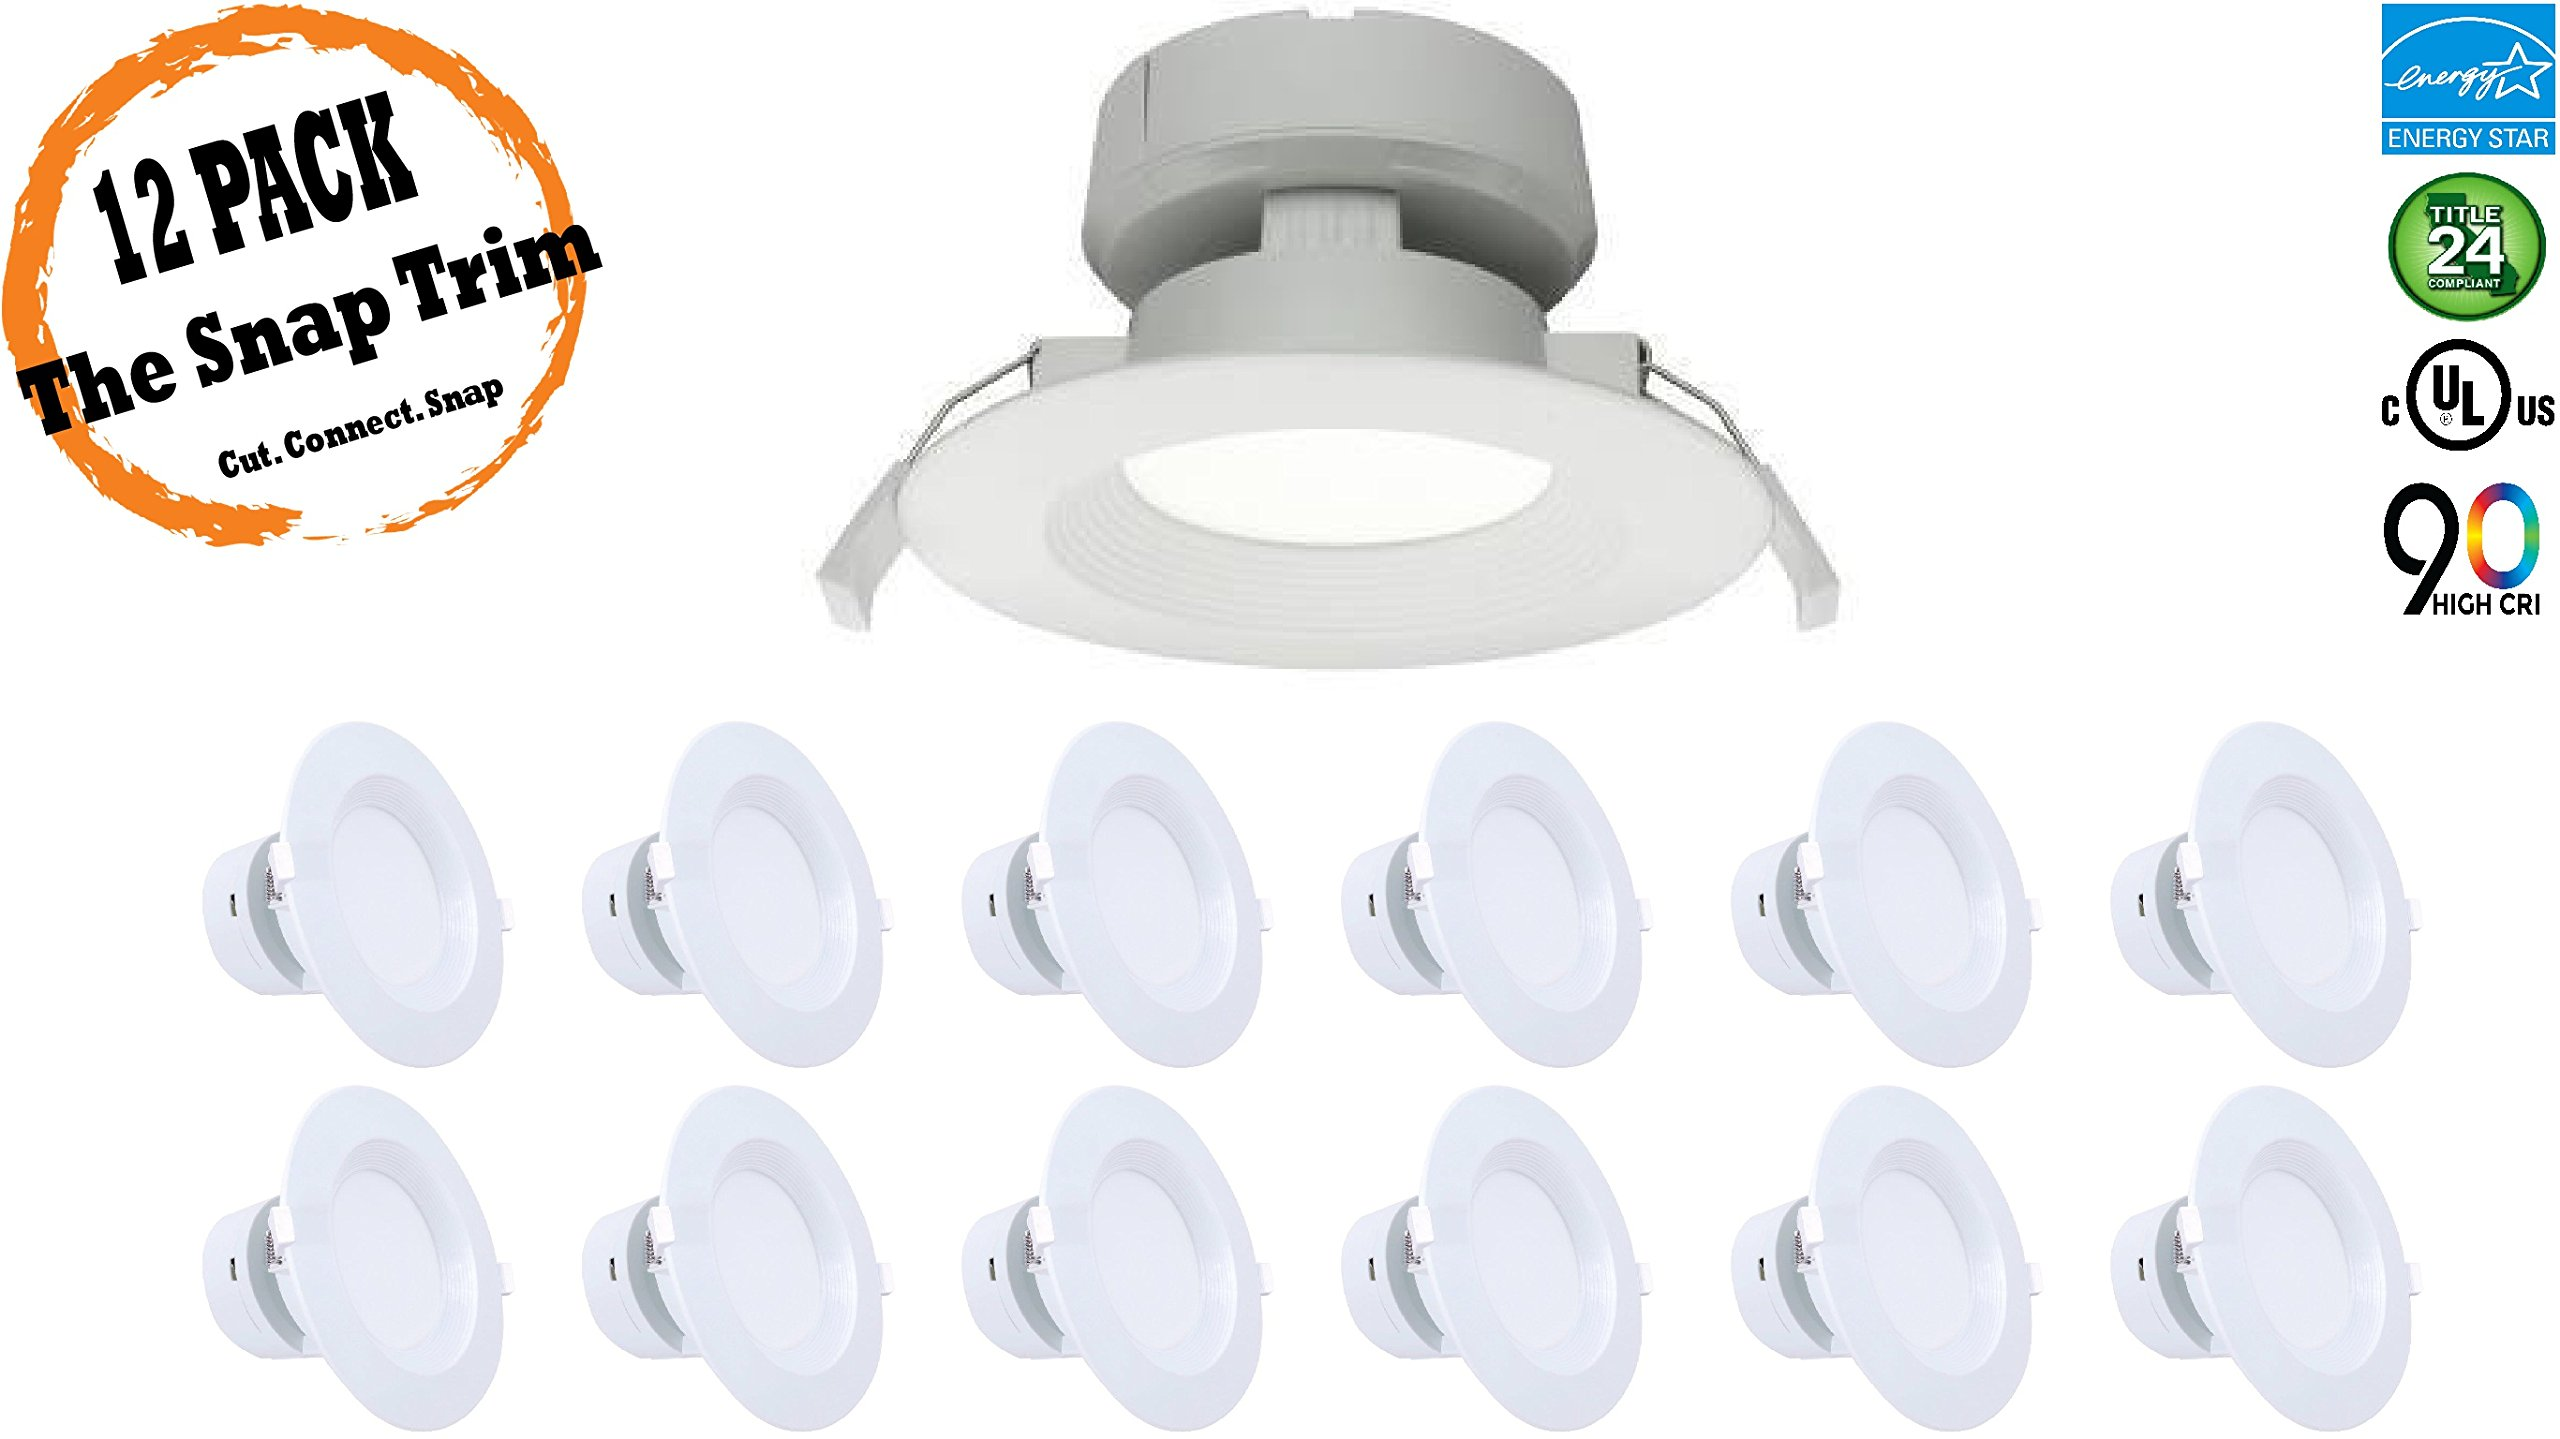 4'' Inch J-Box LED Canless Downlight; 7W=65/75W Equivalent; 40,000 Life Hours; Dimmable to 5%; Wet Location Rated; 5 Year Warranty; 120V; 550 Lumens; CRI>90; Cool White 4000K- (12 PACK)